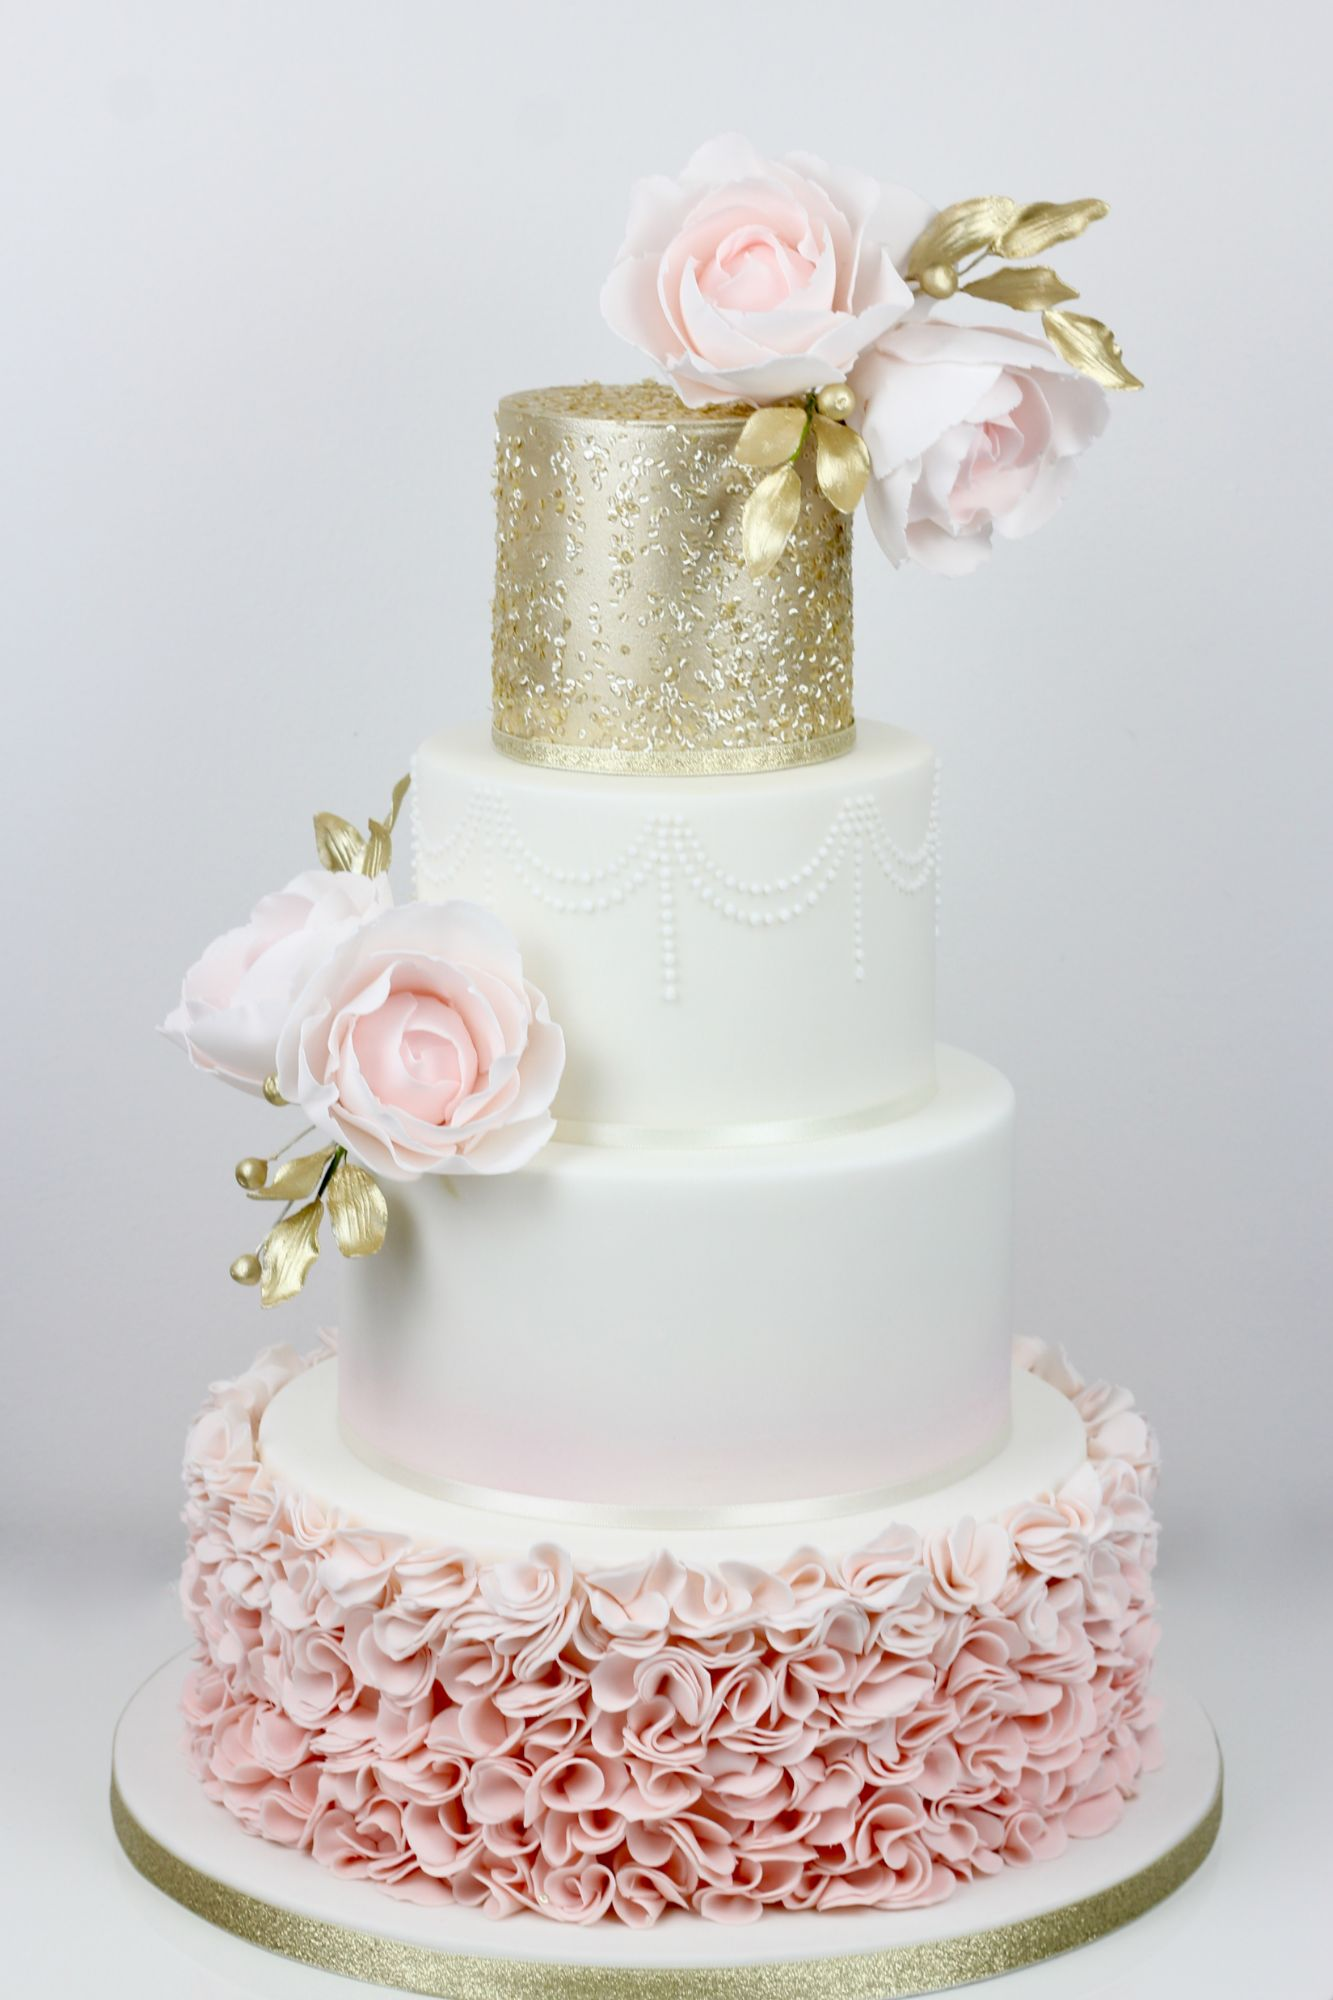 4 tiers with pink ombre icing ruffles with airbrushed ombre effect top tier gold sequins with pink roses and handpainted gold leaves